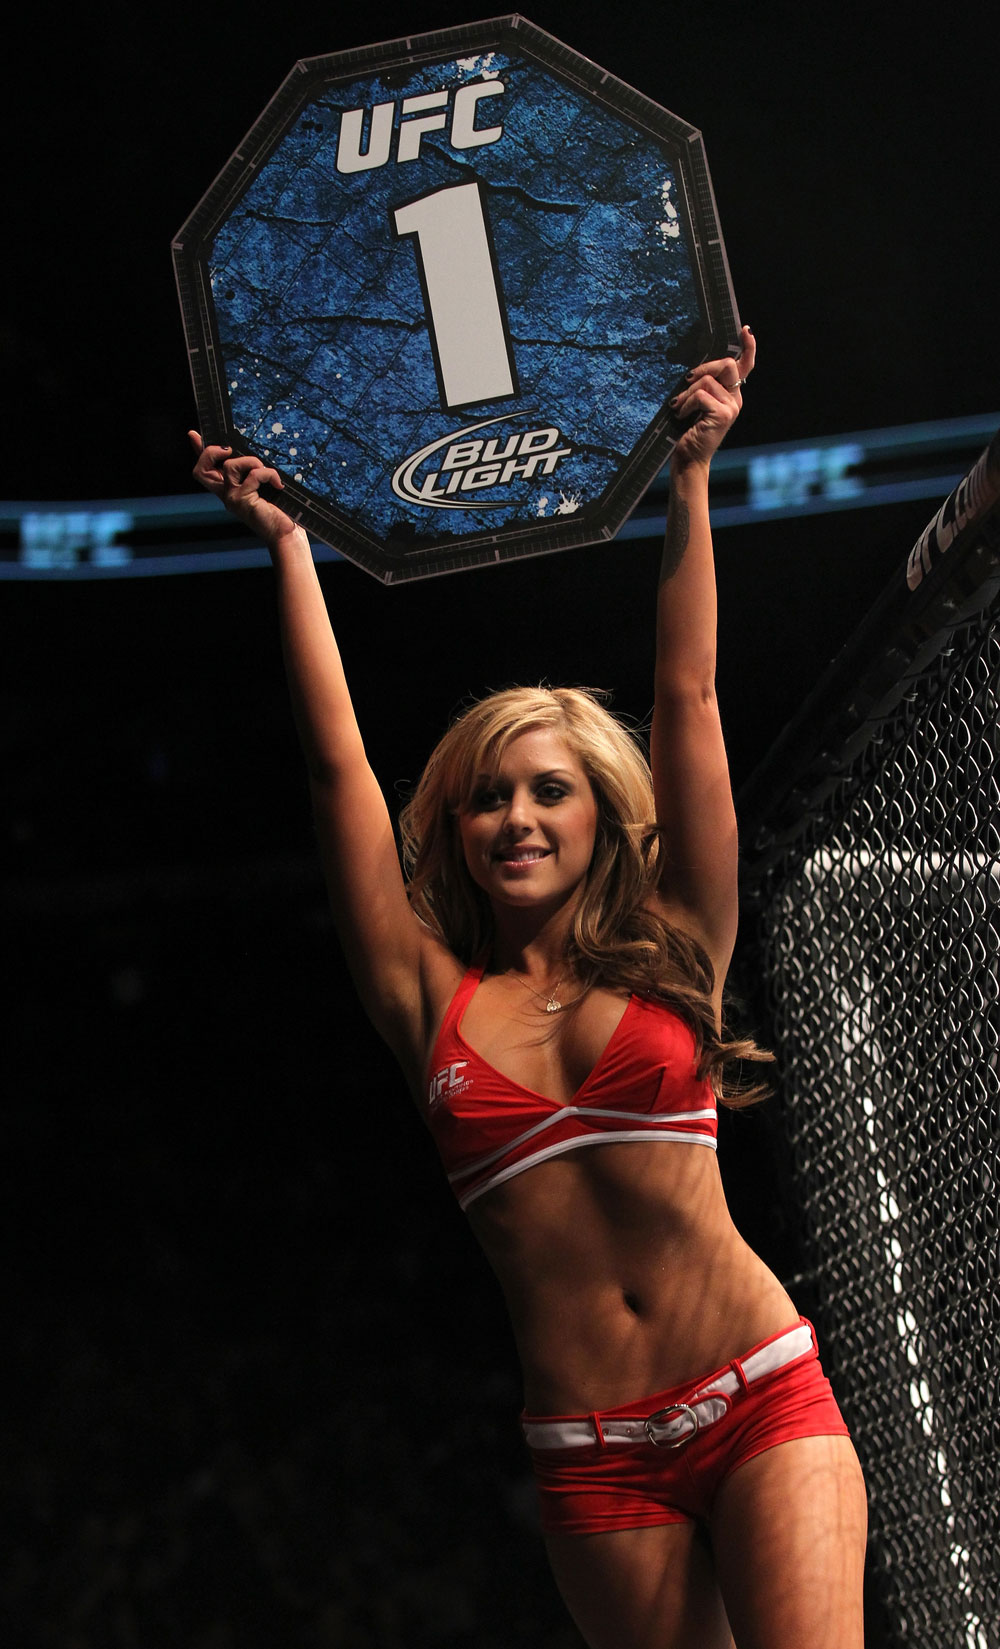 TORONTO, ON - DECEMBER 10:  UFC Octagon Girl Brittney Palmer introduces round one before the Hallman v Makdessi bout during the UFC 140 event at Air Canada Centre on December 10, 2011 in Toronto, Ontario, Canada.  (Photo by Nick Laham/Zuffa LLC/Zuffa LLC via Getty Images)